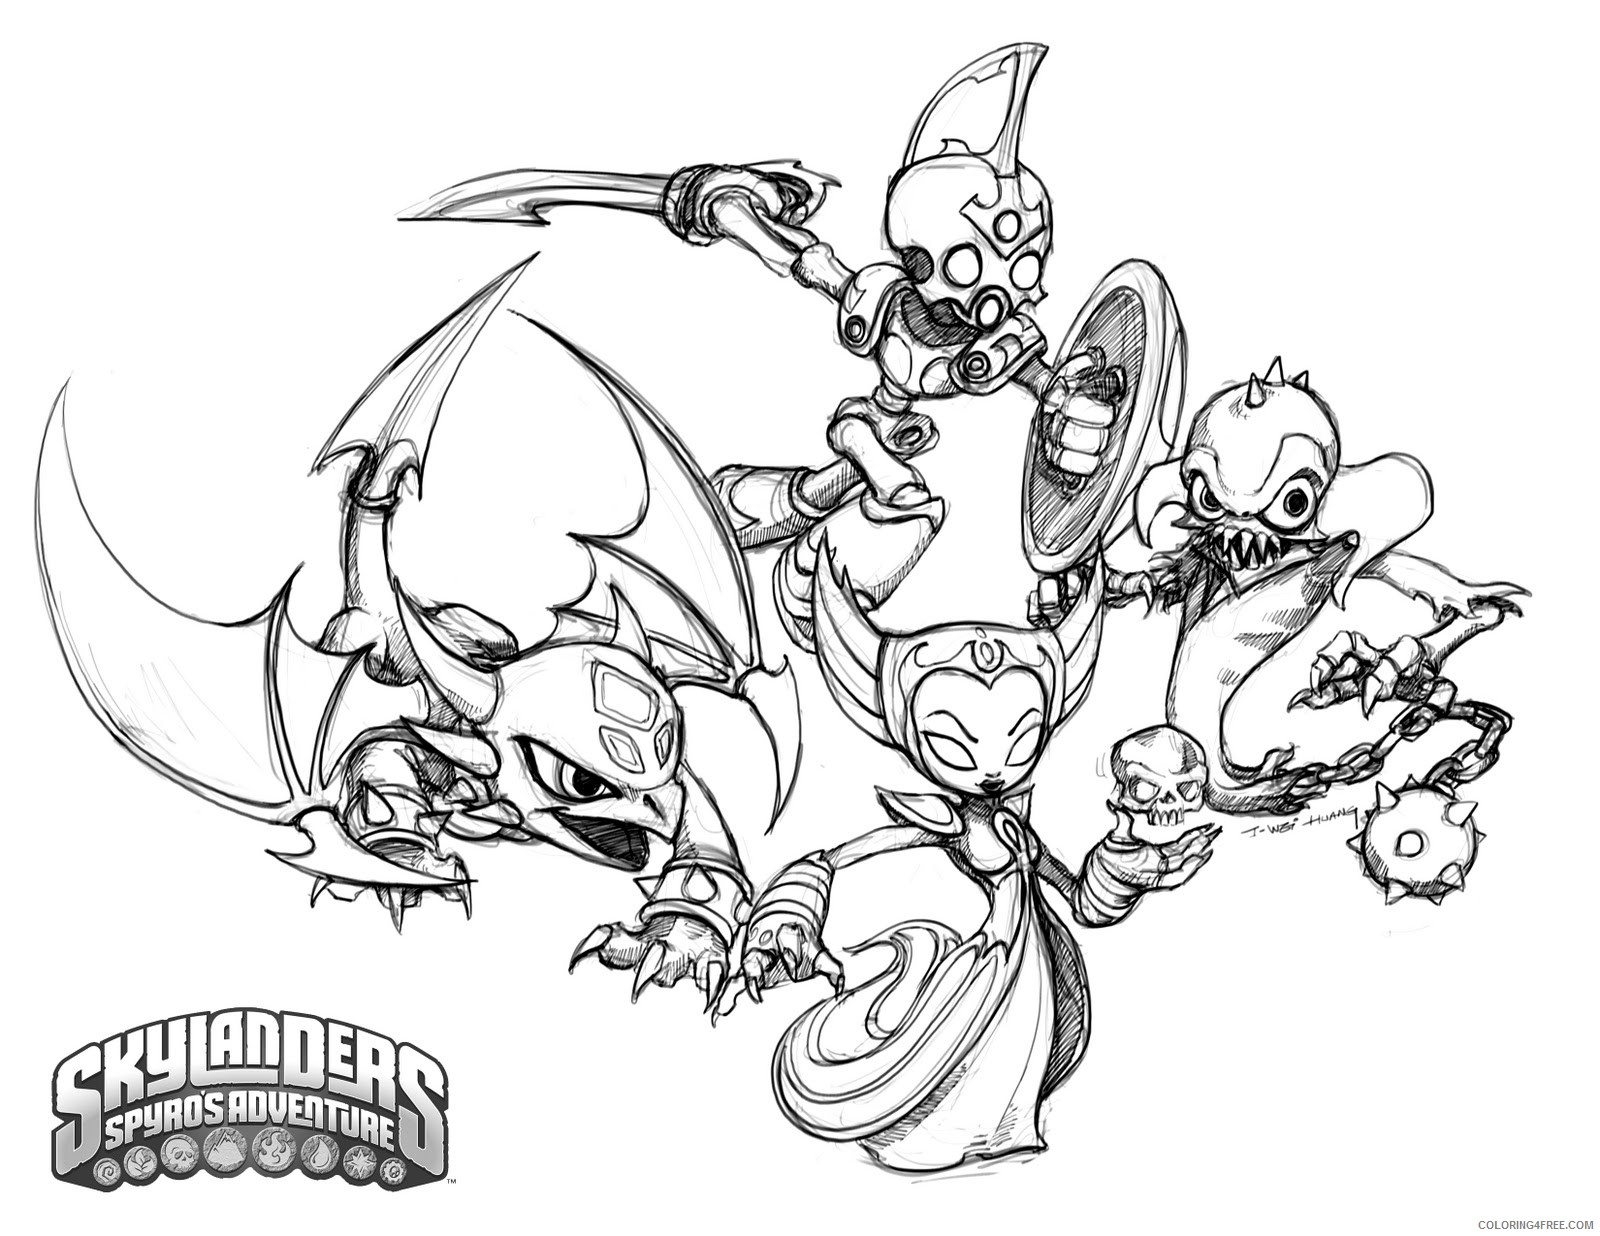 Skylanders: Free coloring pages, games and activities for kids | 1236x1600